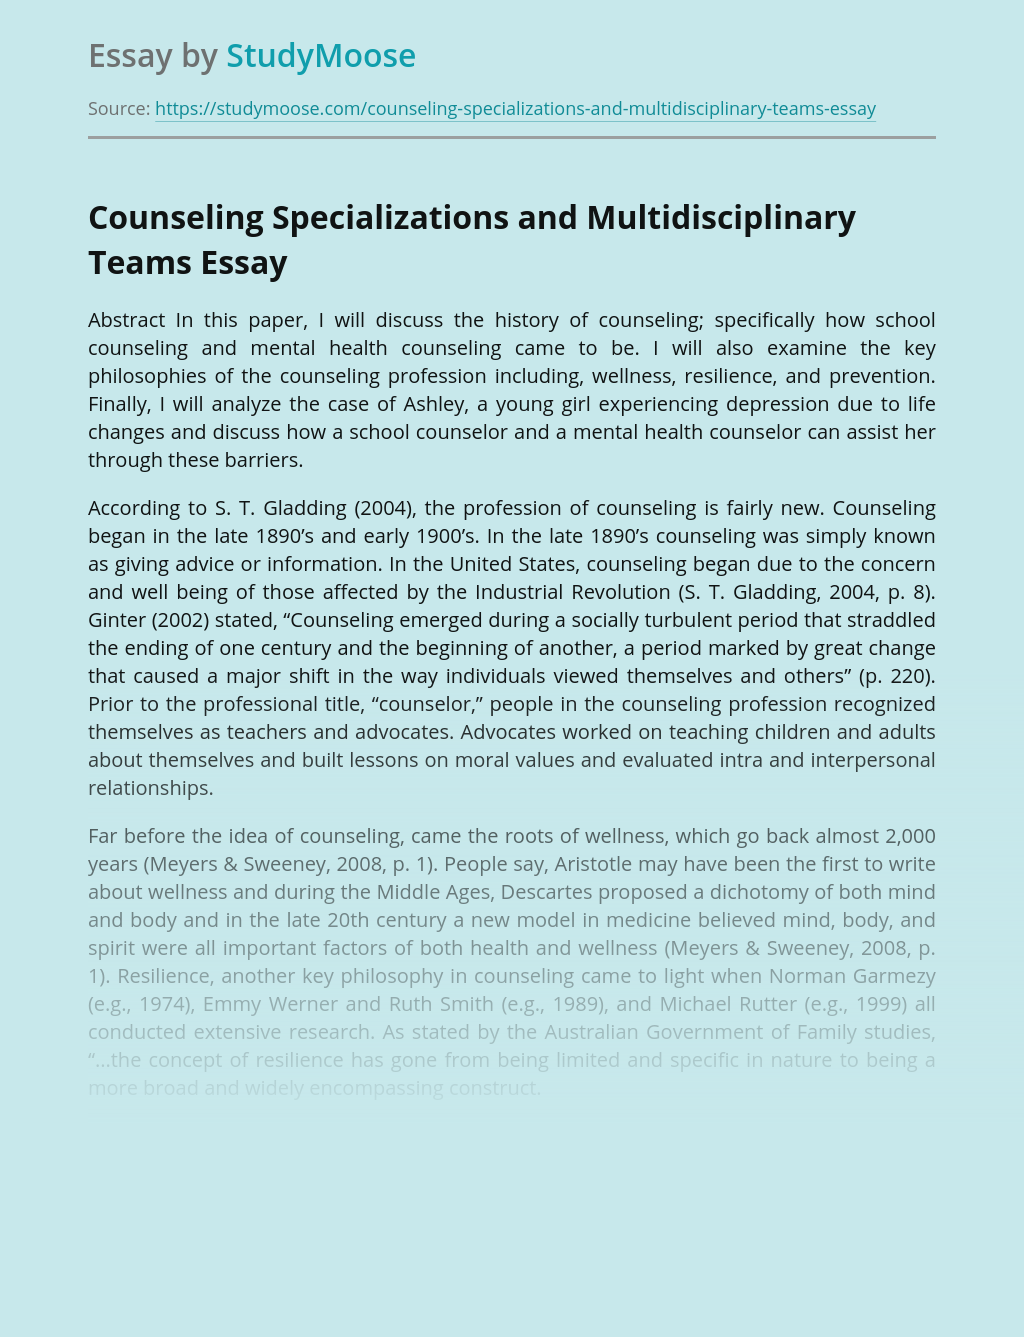 Counseling Specializations and Multidisciplinary Teams